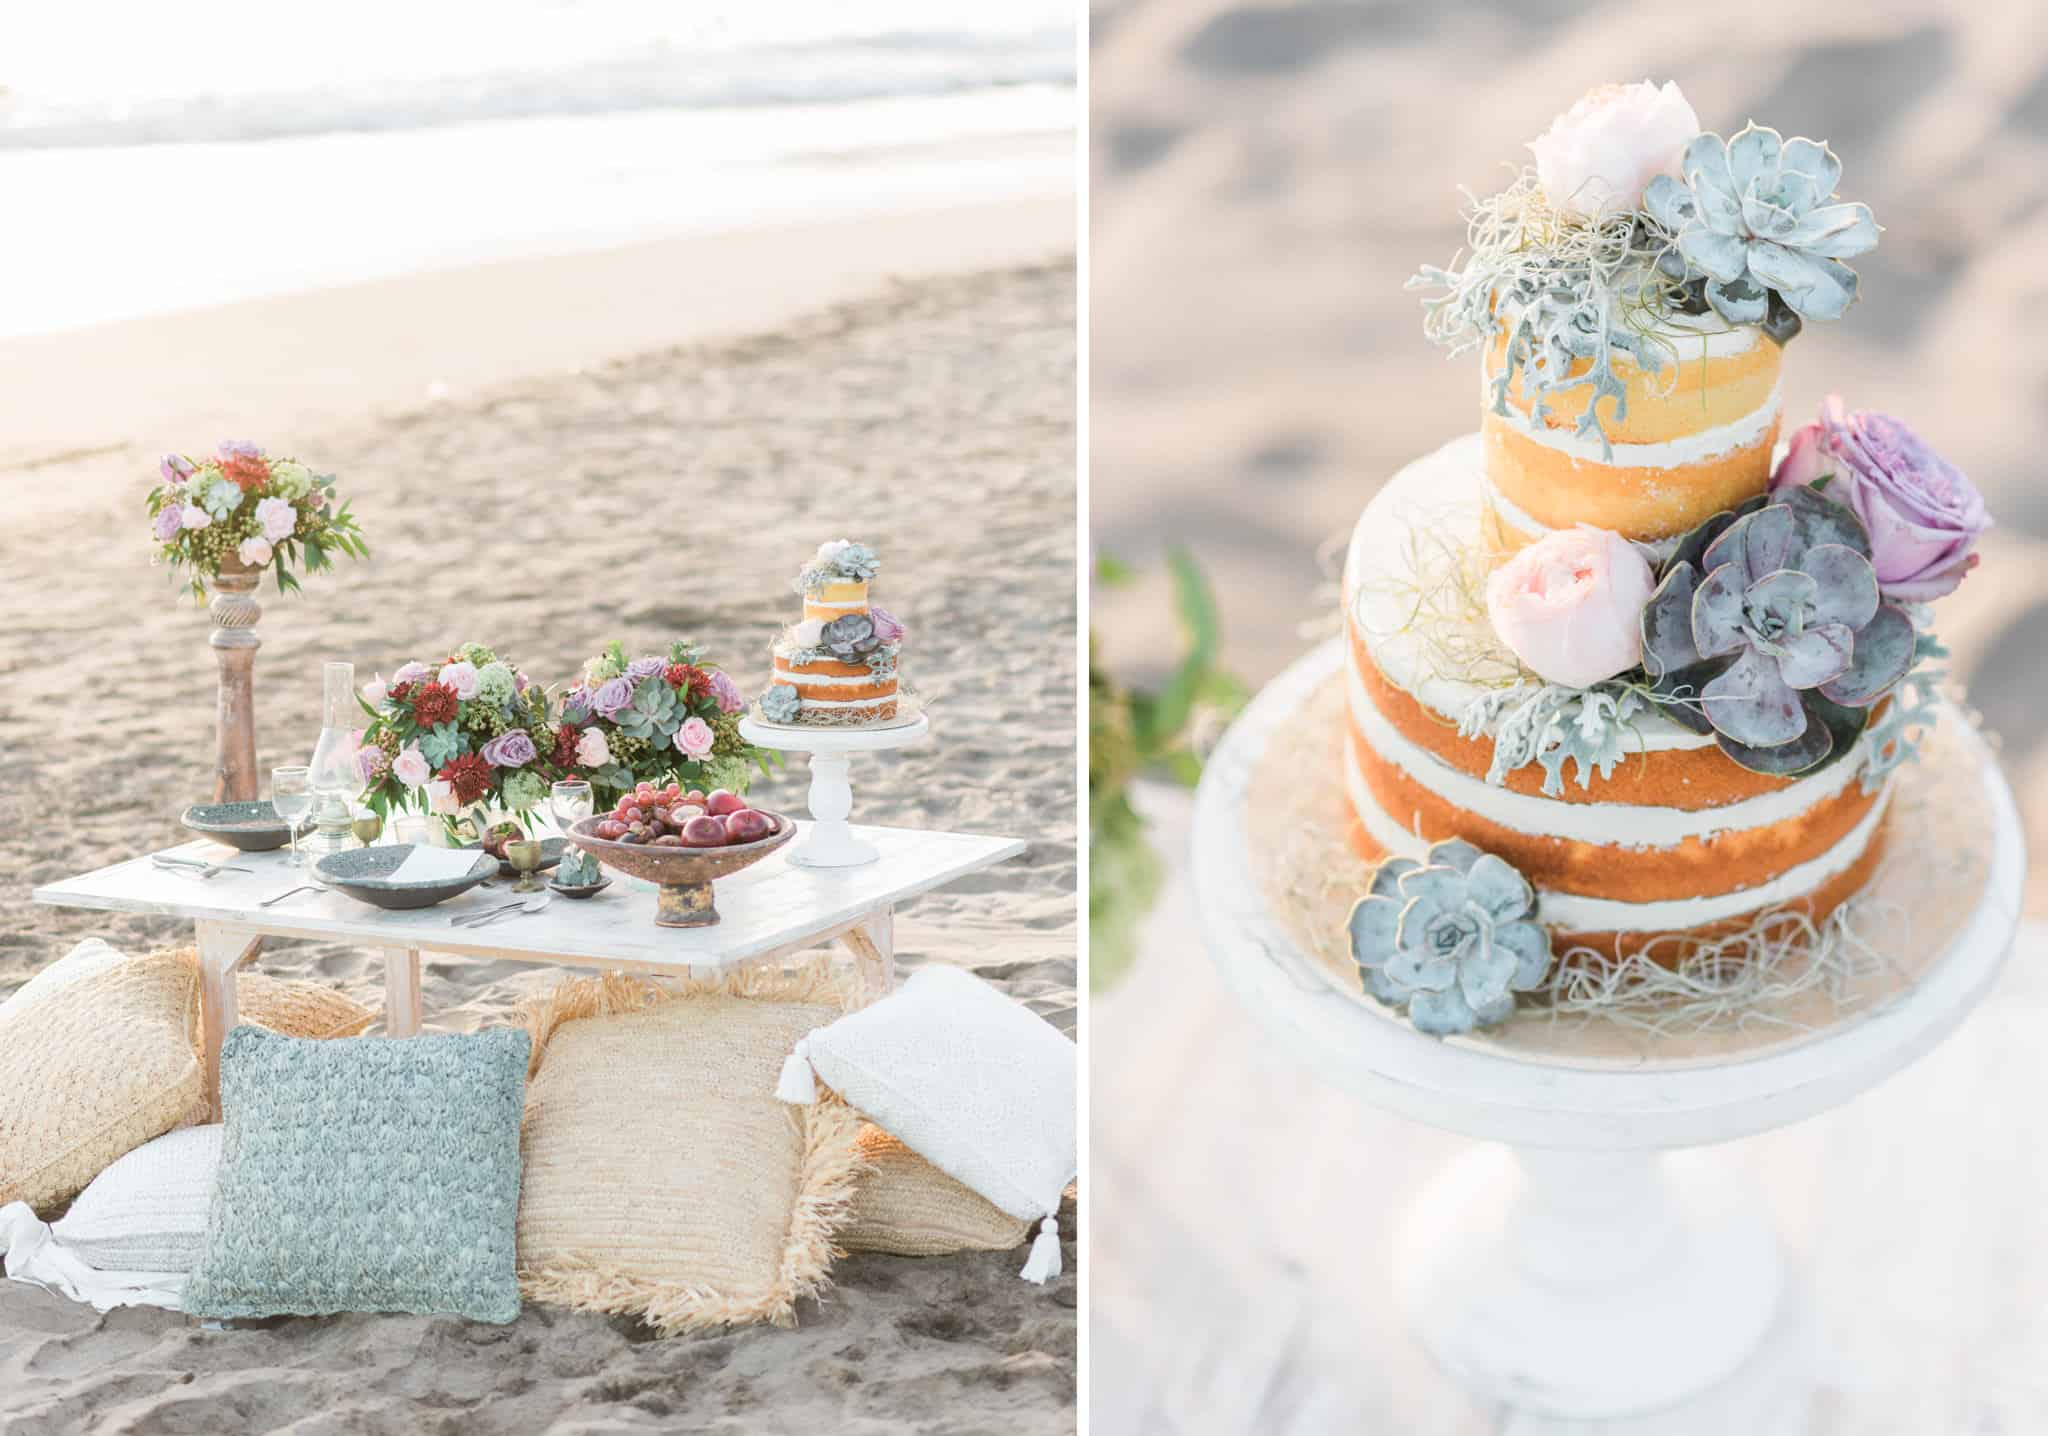 Dreamy Romantic Beach Picnic in Bali - Wed Over Hills